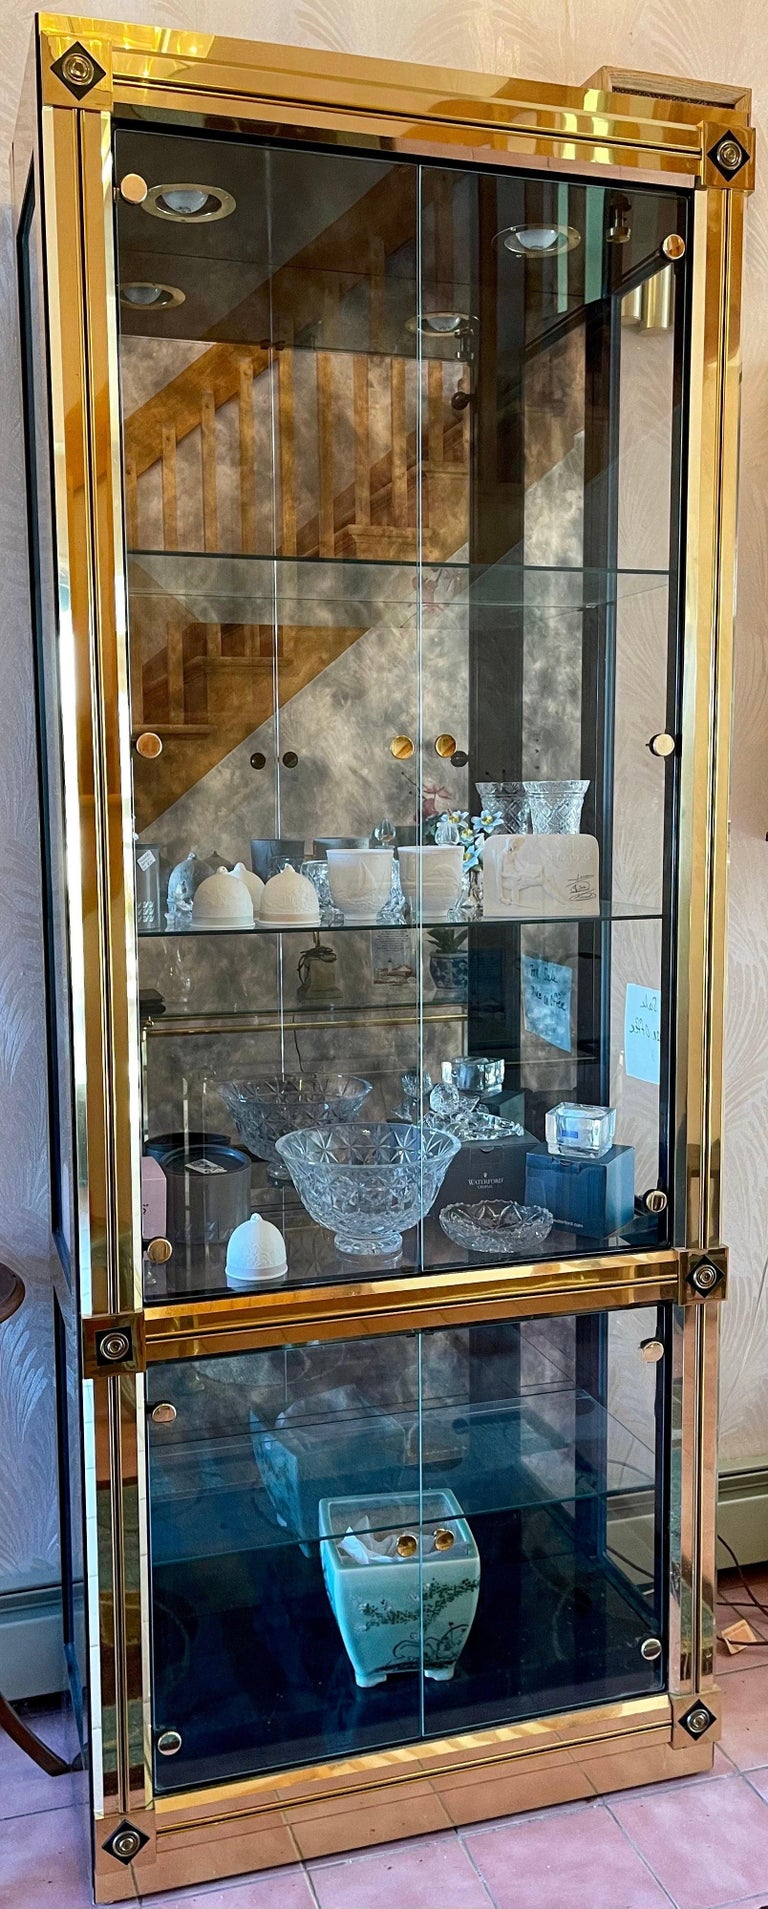 Uncommonly seen Model 280 polished brass vitrine china display cabinet, designed by William Doezema and executed by Mastercraft of Grand Rapids circa 1970,  Four glass doors, three adjustable glass shelves with groove for plate or picture display